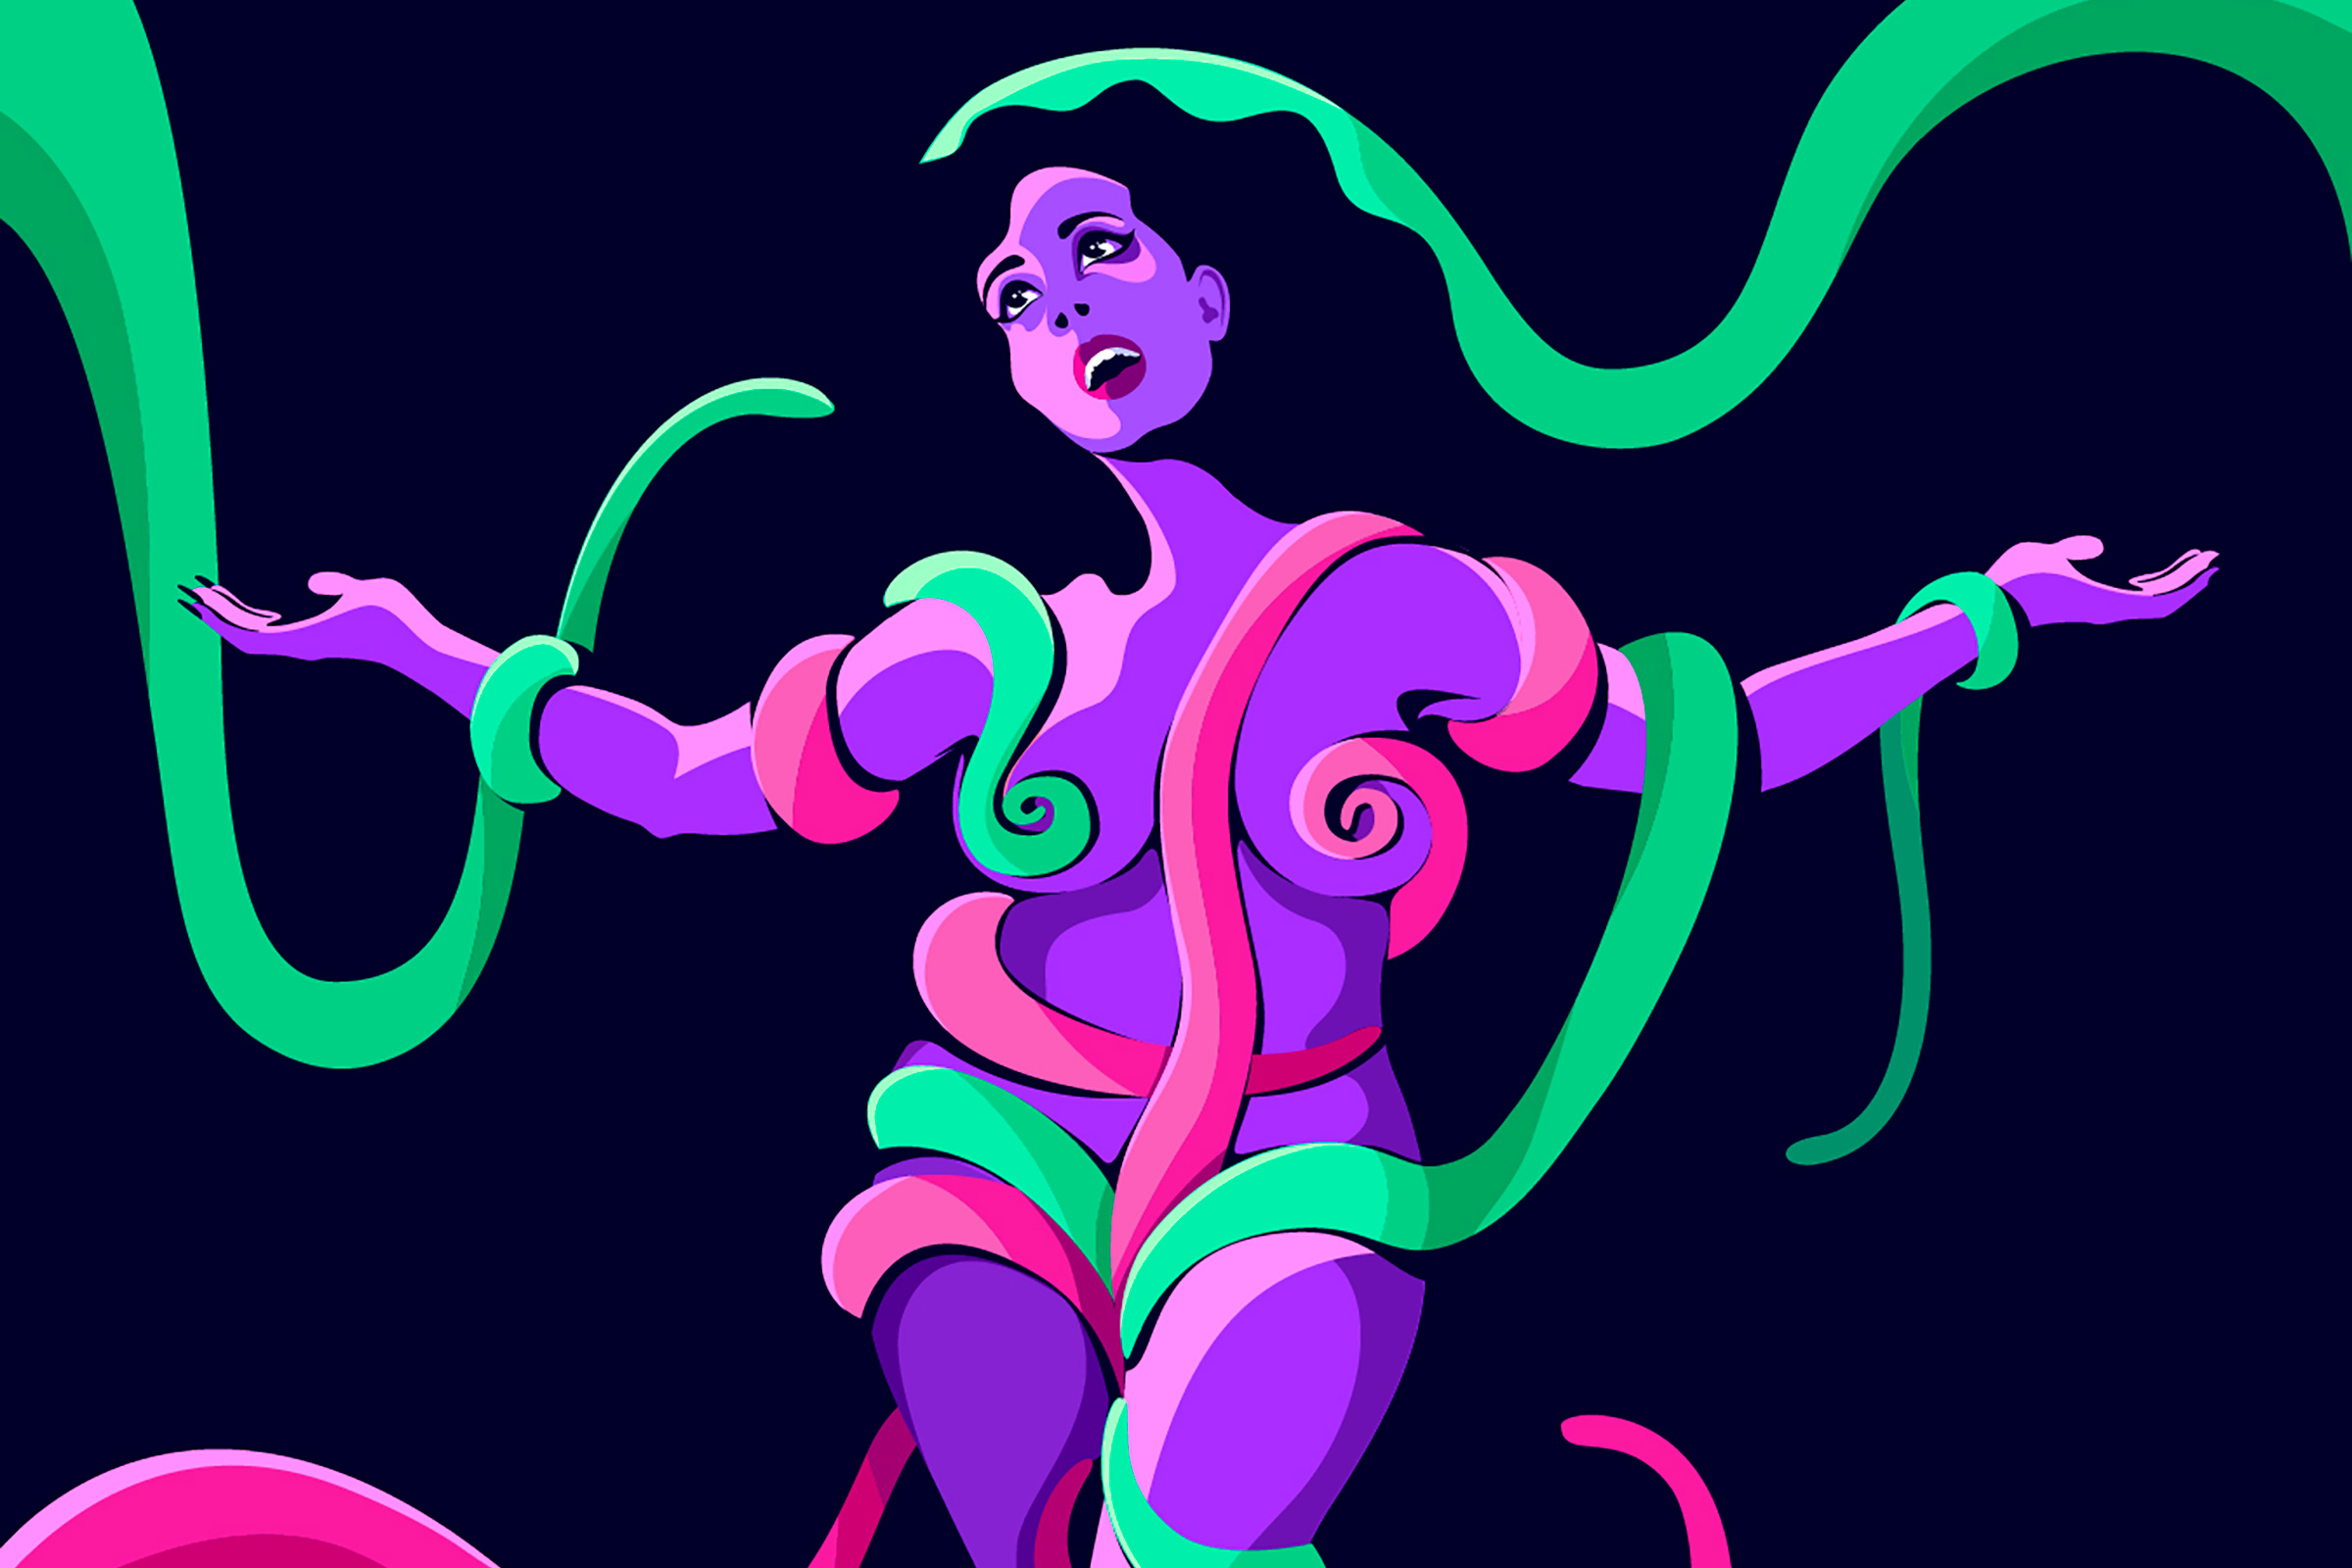 illustration of a nude, curvy, purple female figure wrapped in pink and green tentacles